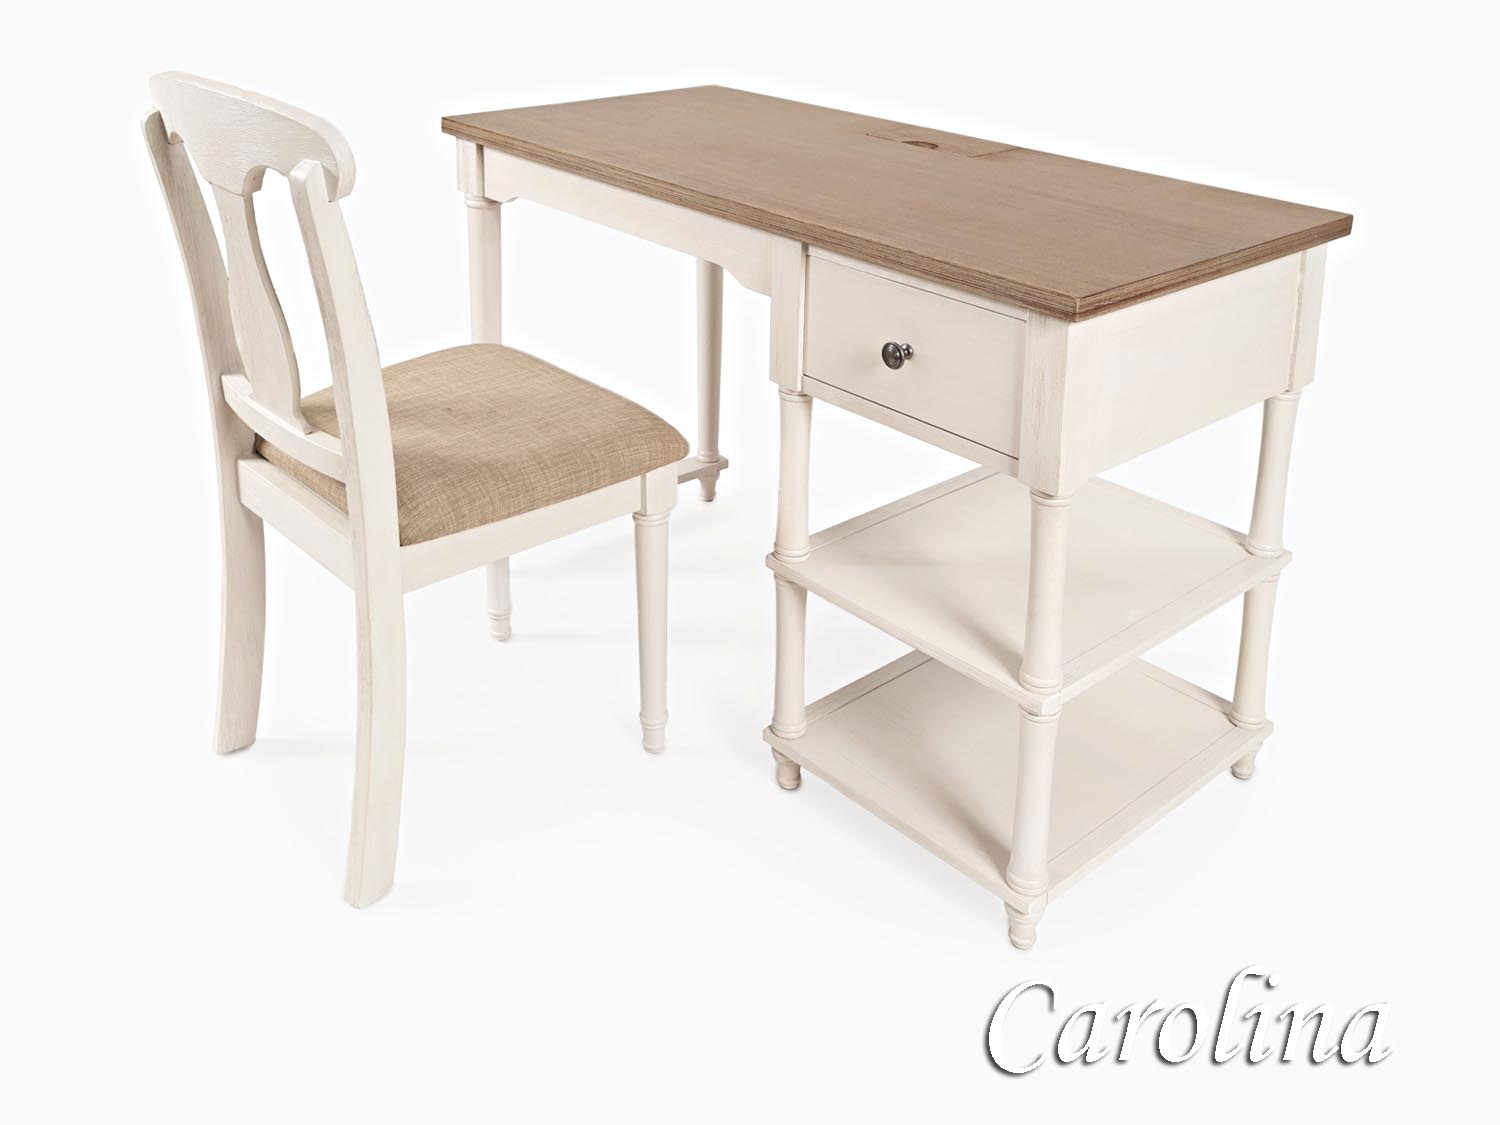 Carolina, Desk, Chair, Home Office, Cape Cod, Seaside, Coastal, Cottage, Casual, White, Driftwood, Wire Brushed